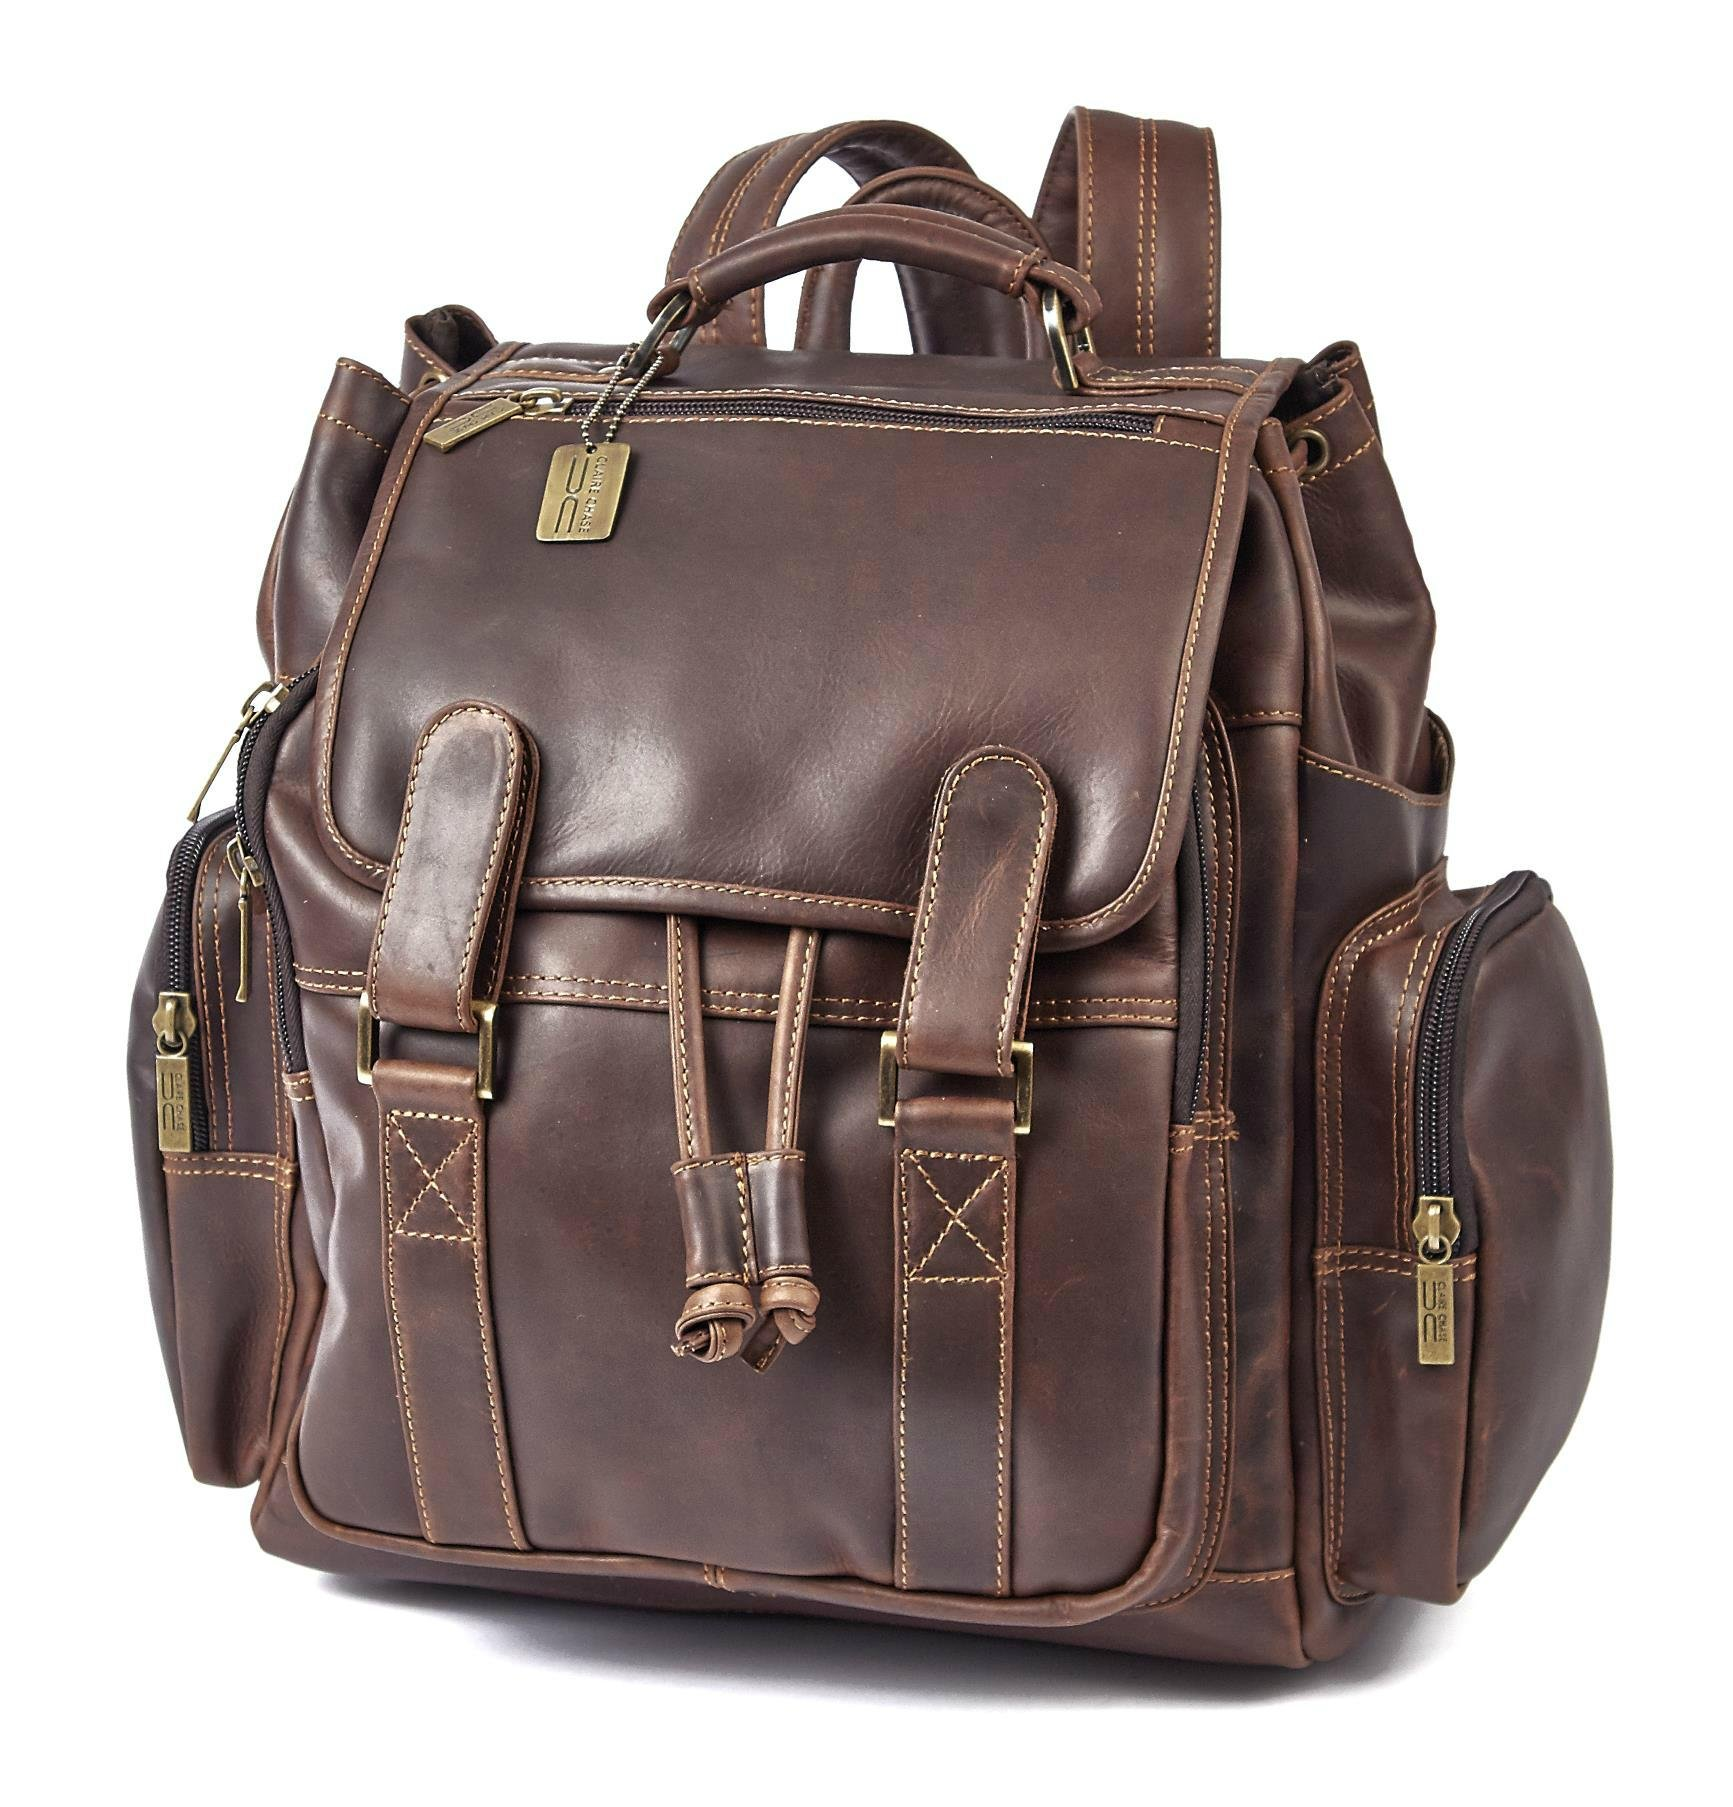 Claire Chase Legendary Jumbo Business Backpack, Dark Brown, One Size